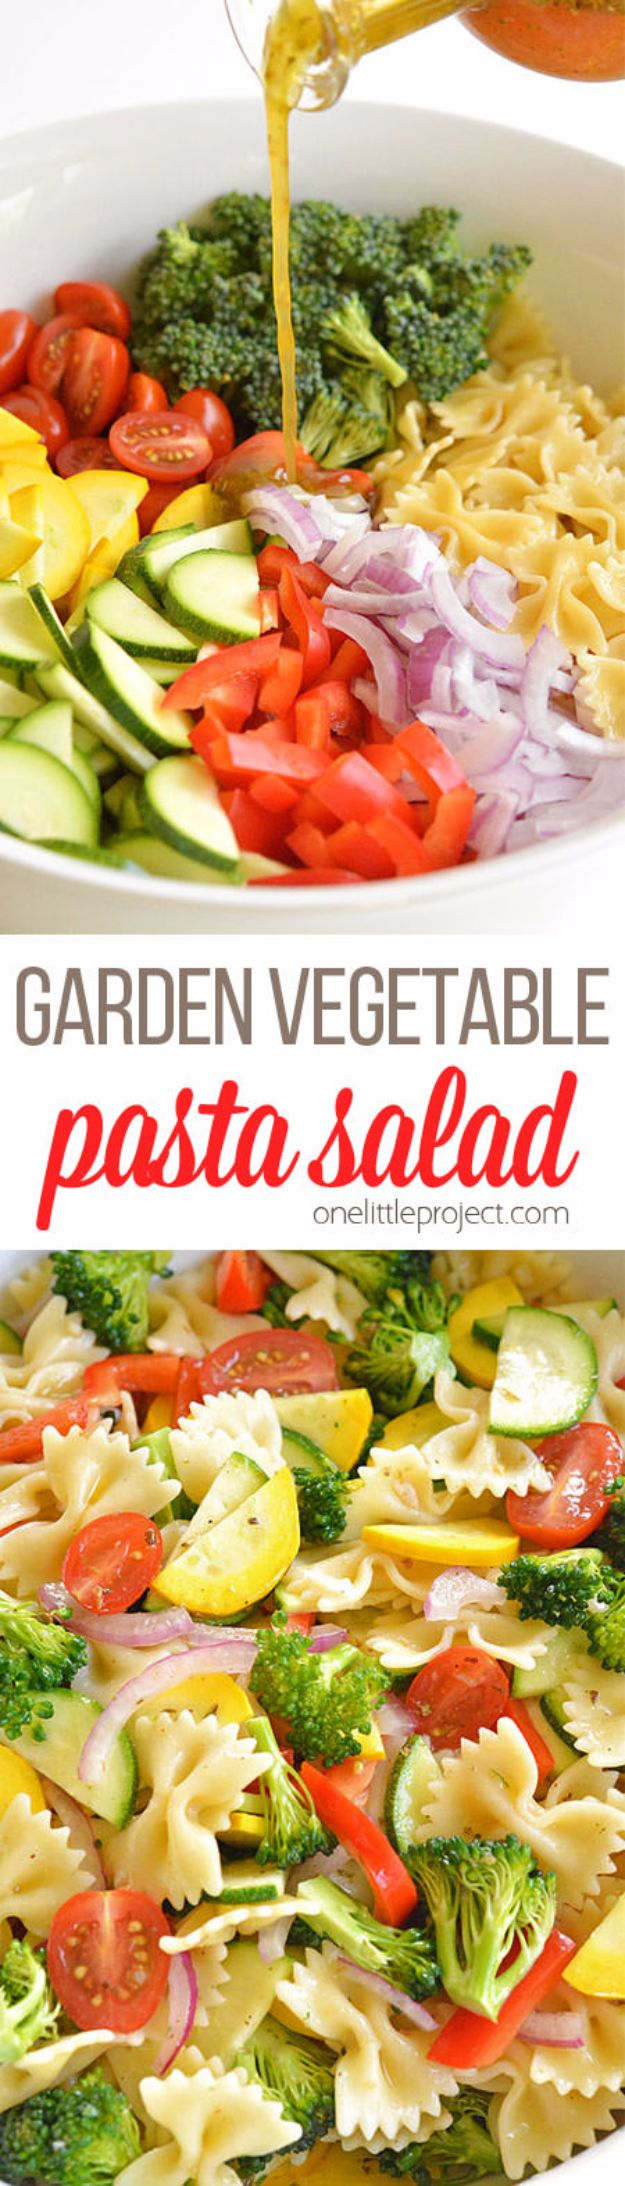 Best Dinner Salad Recipes - Garden Vegetable Pasta Salad - Easy Salads to Make for Quick and Healthy Dinners - Healthy Chicken, Egg, Vegetarian, Steak and Shrimp Salad Ideas - Summer Side Dishes, Hearty Filling Meals, and Low Carb Options #saladrecipes #dinnerideas #salads #healthyrecipes